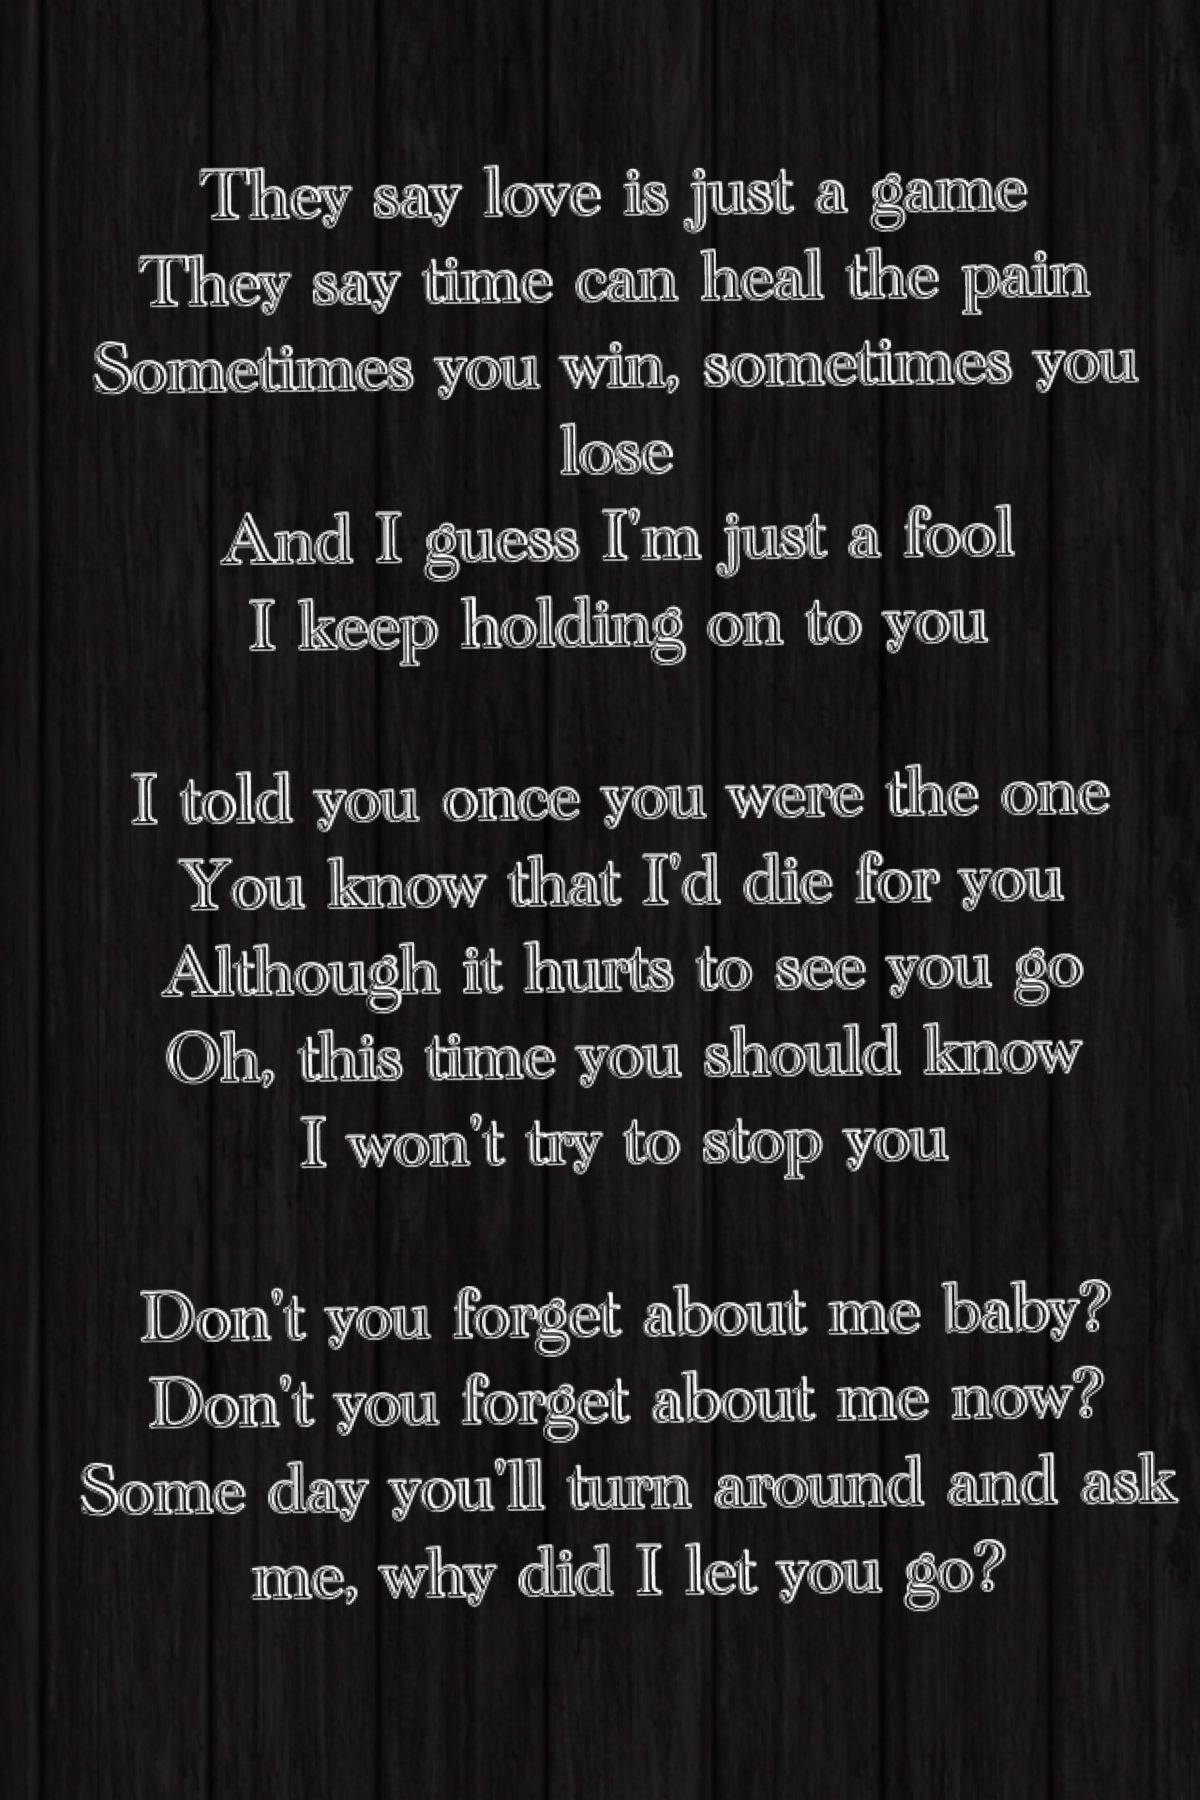 Red Hot Chili Peppers - Don't Forget Me (Lyrics) - YouTube